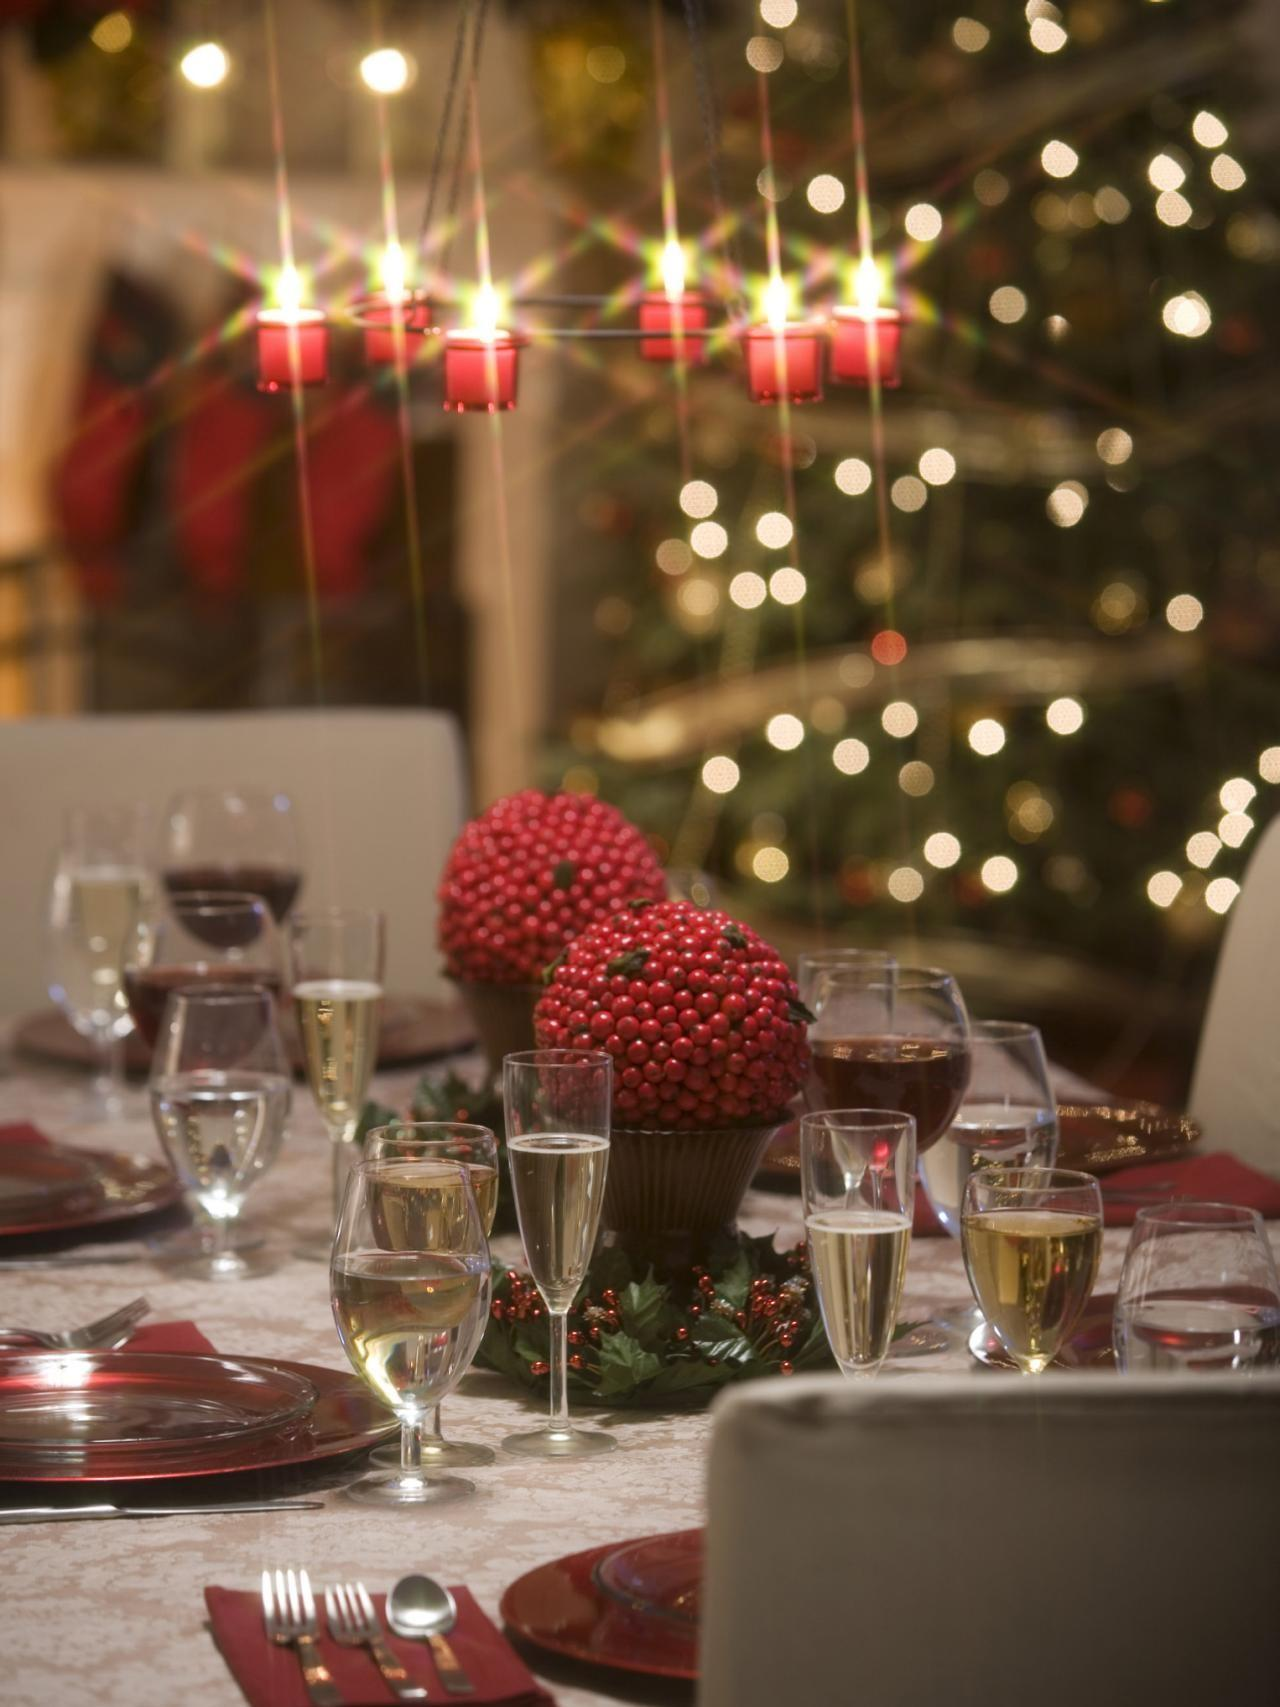 Make Chandeliers Table Settings Sparkle